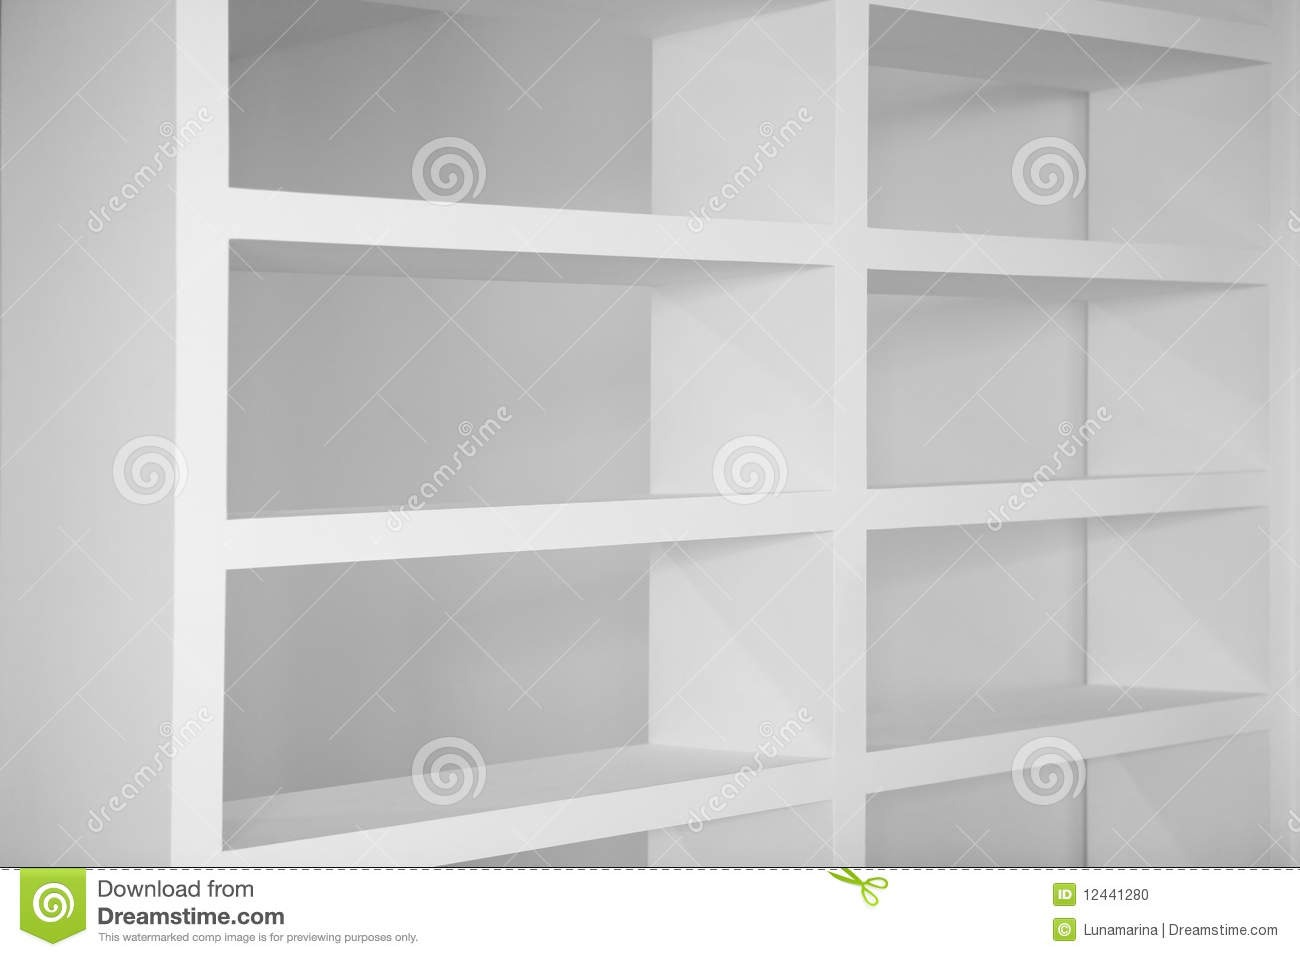 You can place the Sellotape around the corners of your shelfs. eg .desk ,bed frame  .anywhere you want let your imatination explode